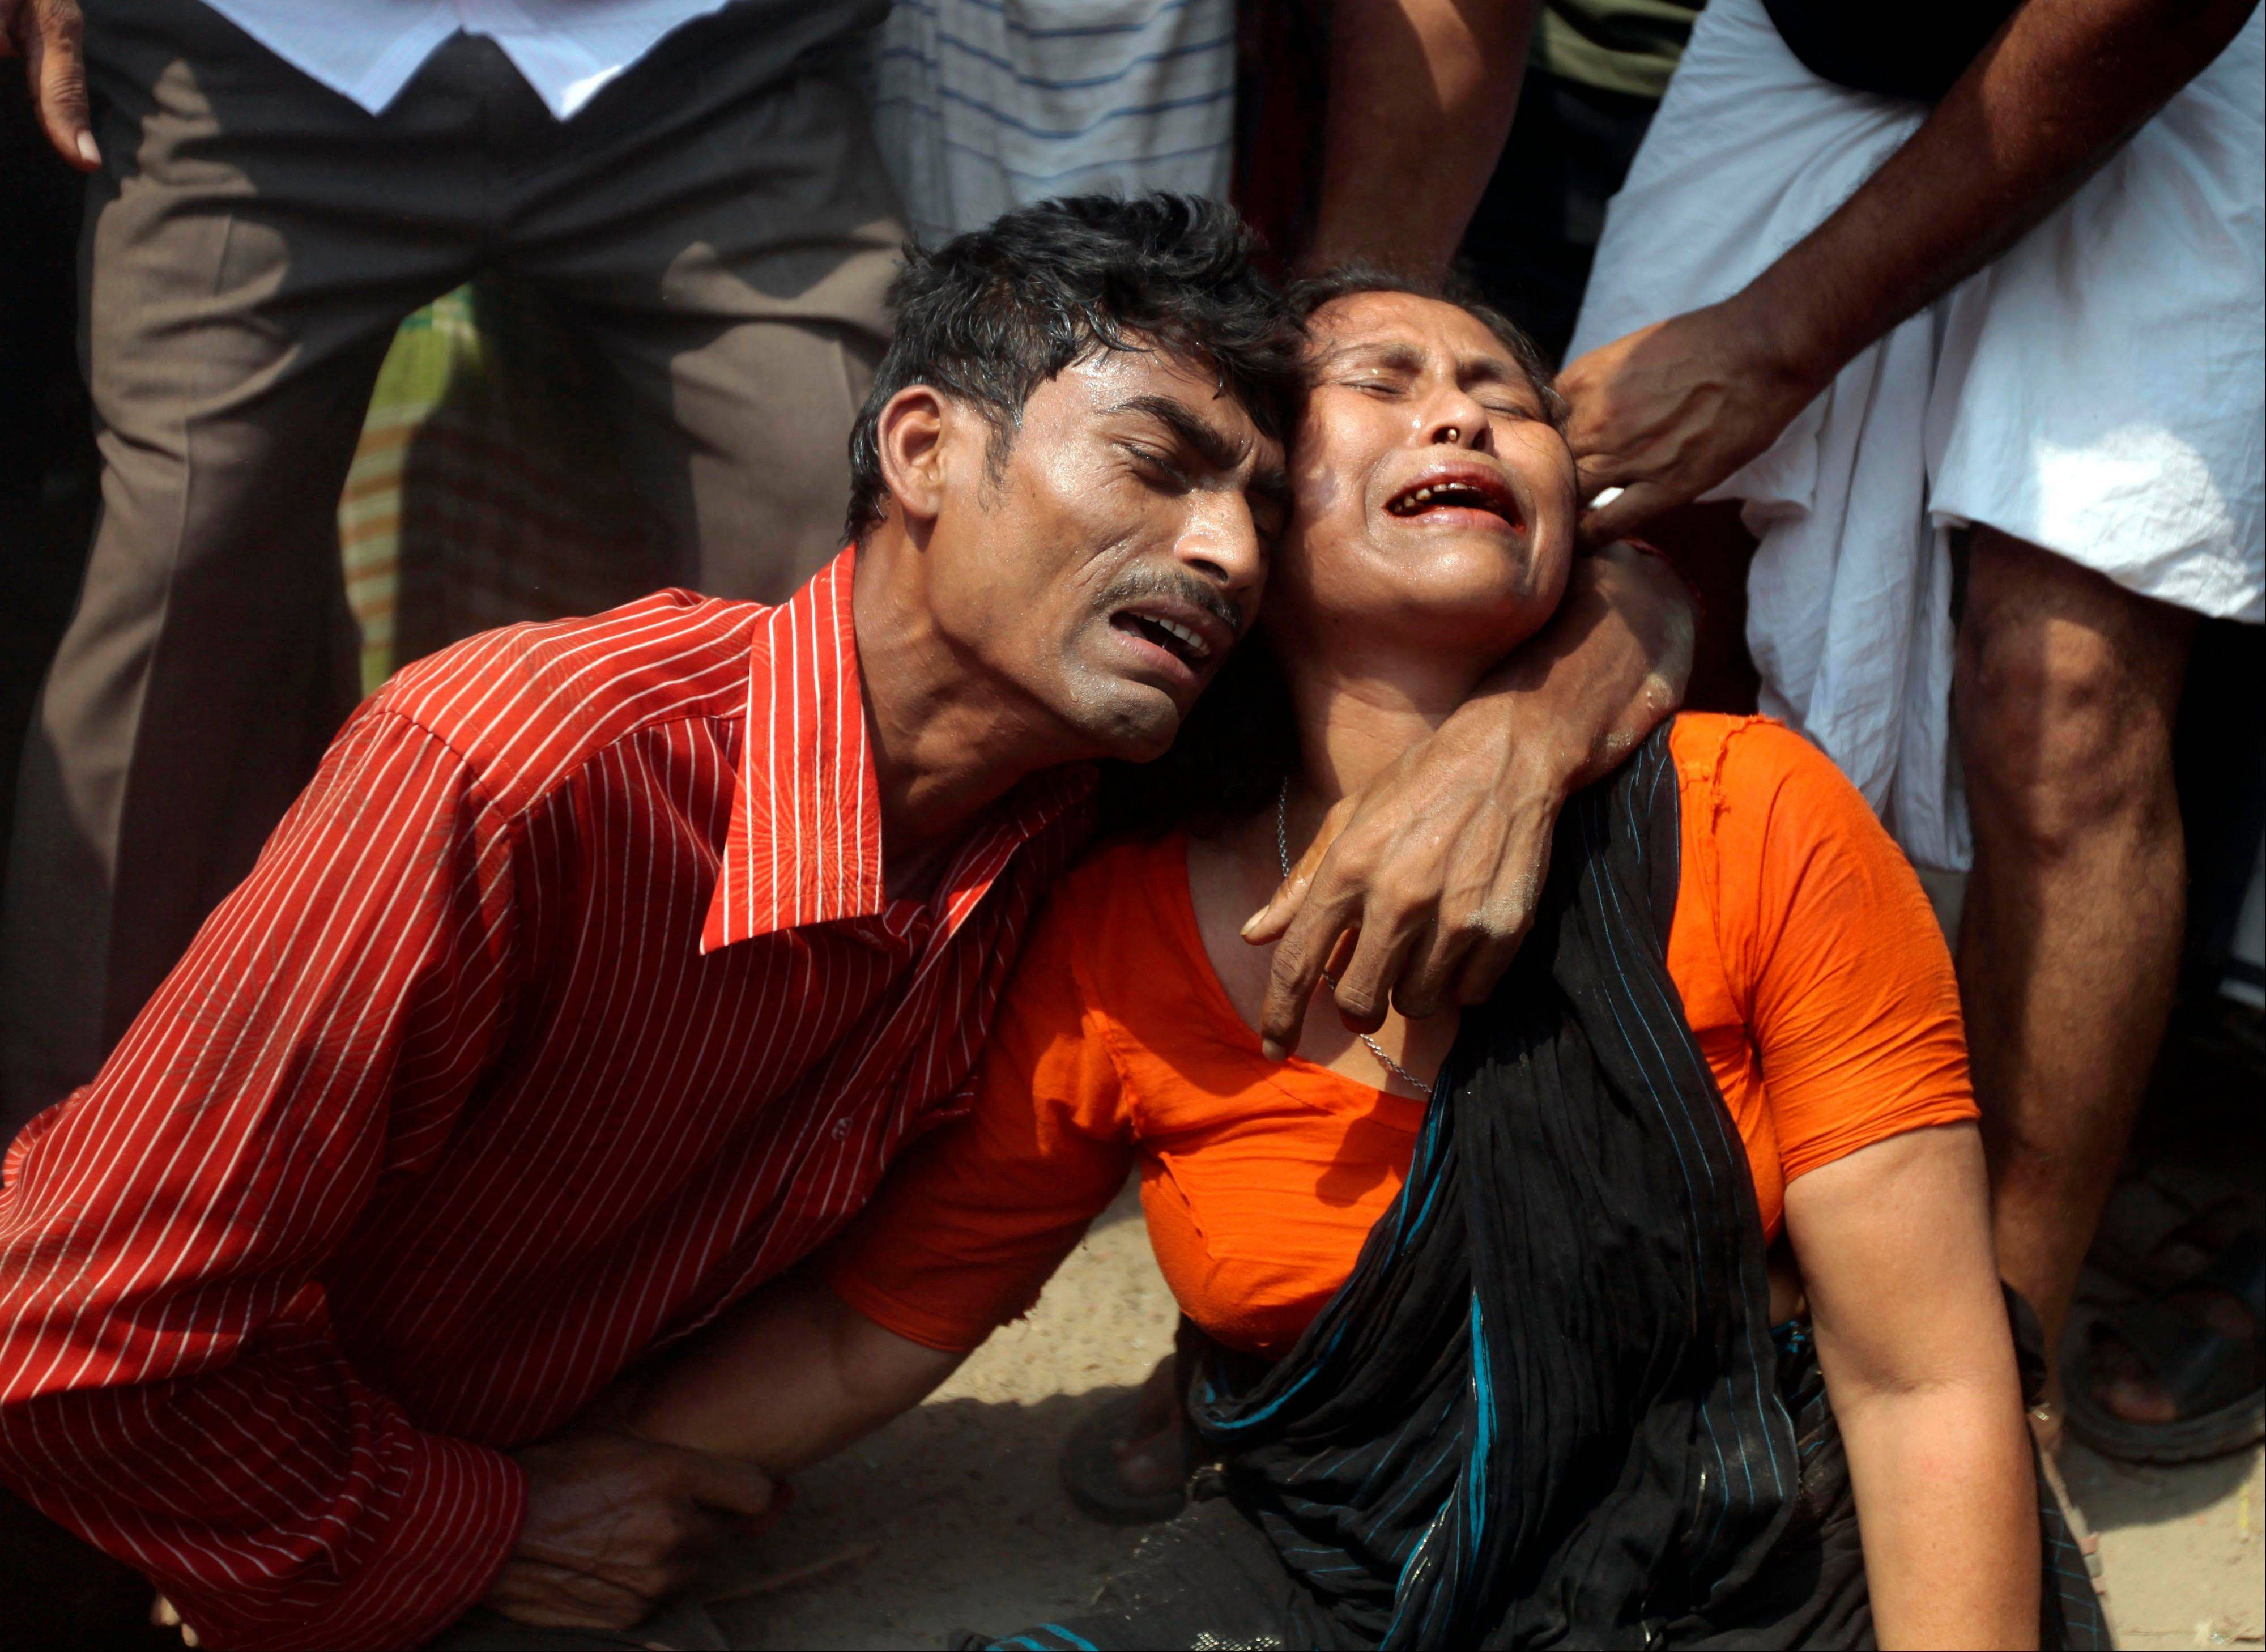 Relatives mourn a victim at the site where an eight-story building housing several garment factories collapsed in Savar, near Dhaka, Bangladesh, Wednesday, April 24, 2013. The building collapsed near Bangladesh�s capital Wednesday morning, killing dozens of people and trapping many more in the rubble, officials said.